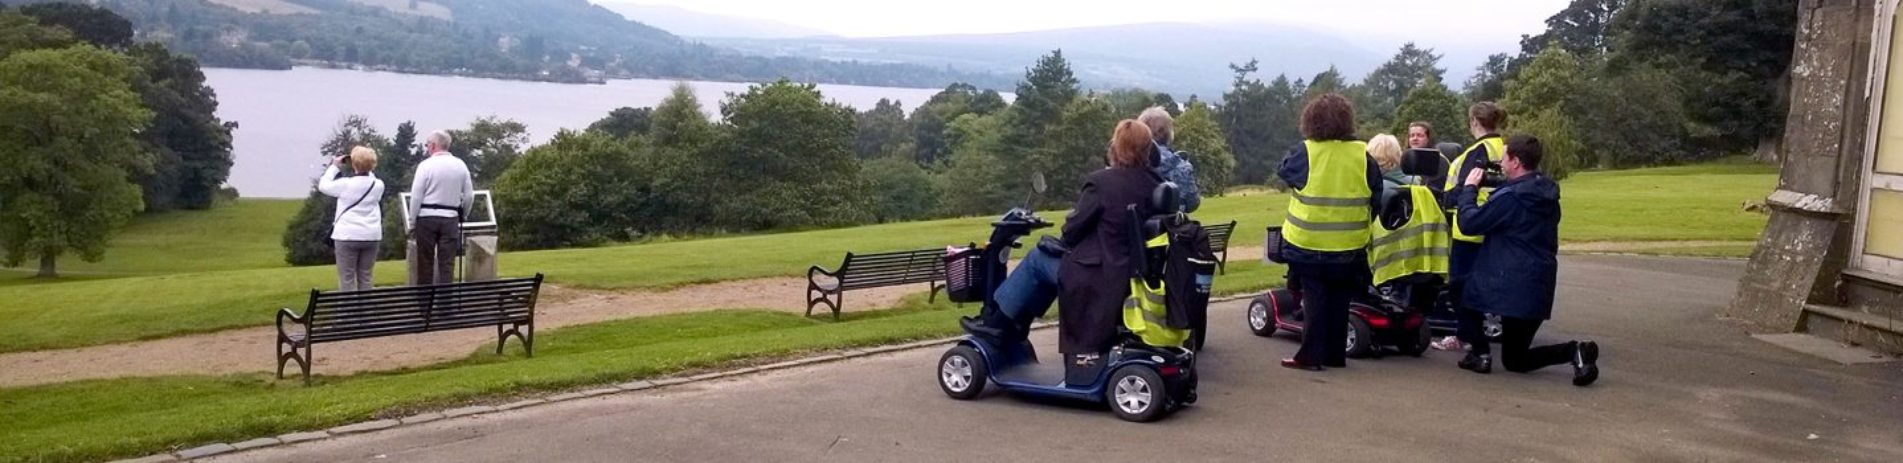 mobility-scooter-drivers-accompanied-by-people-in-high-viz-jackets-looking-into-distance-to-loch-lomond-from-balloch-castle